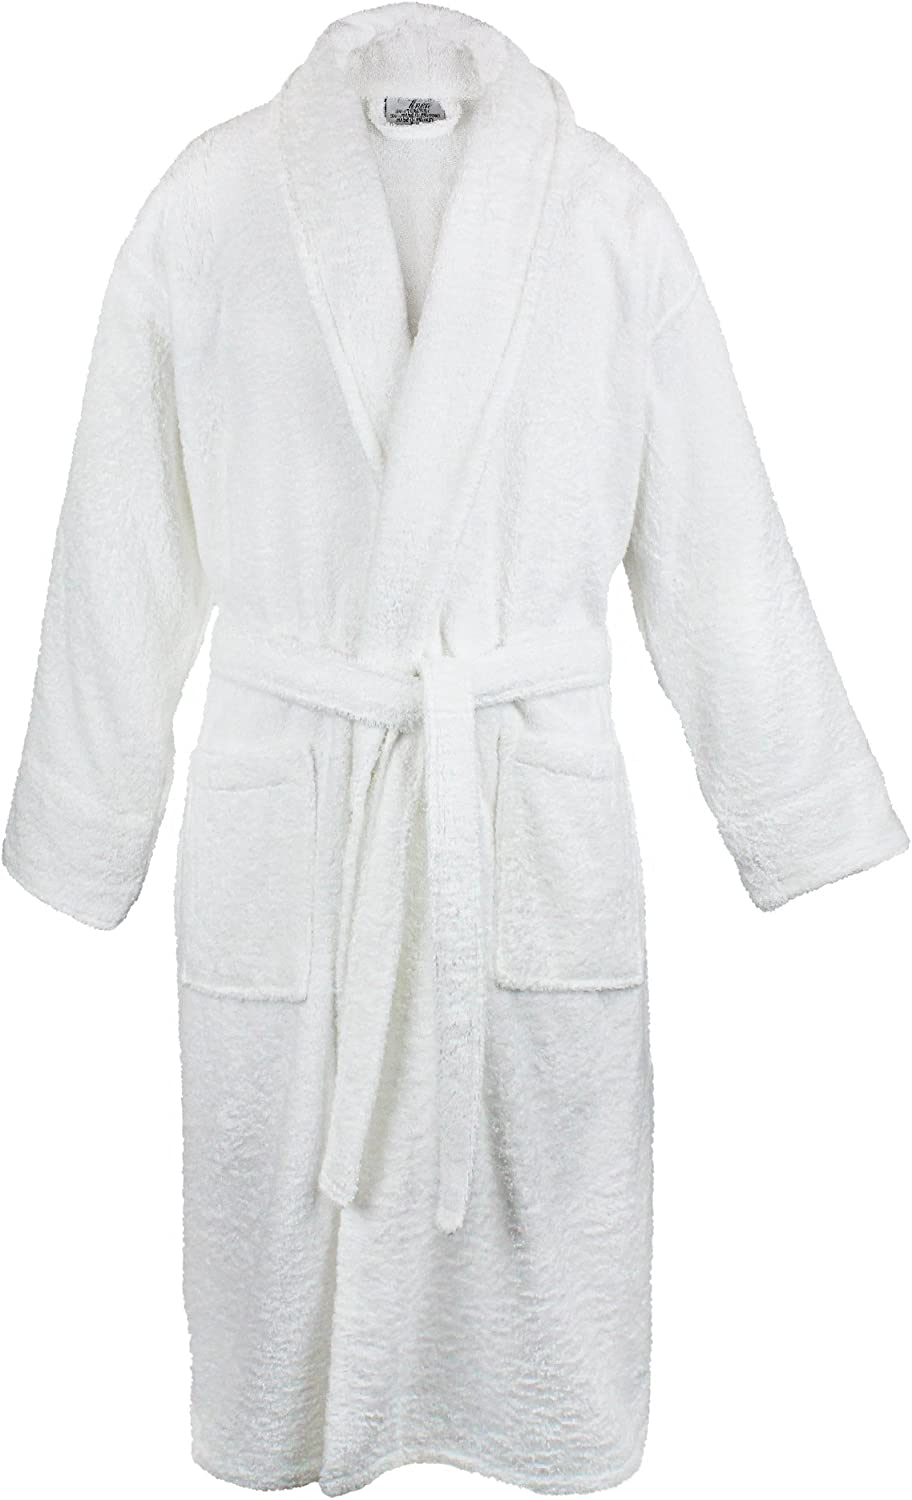 BC BARE COTTON 100% Turkish Women Terry Shawl Robe, Small Medium, White